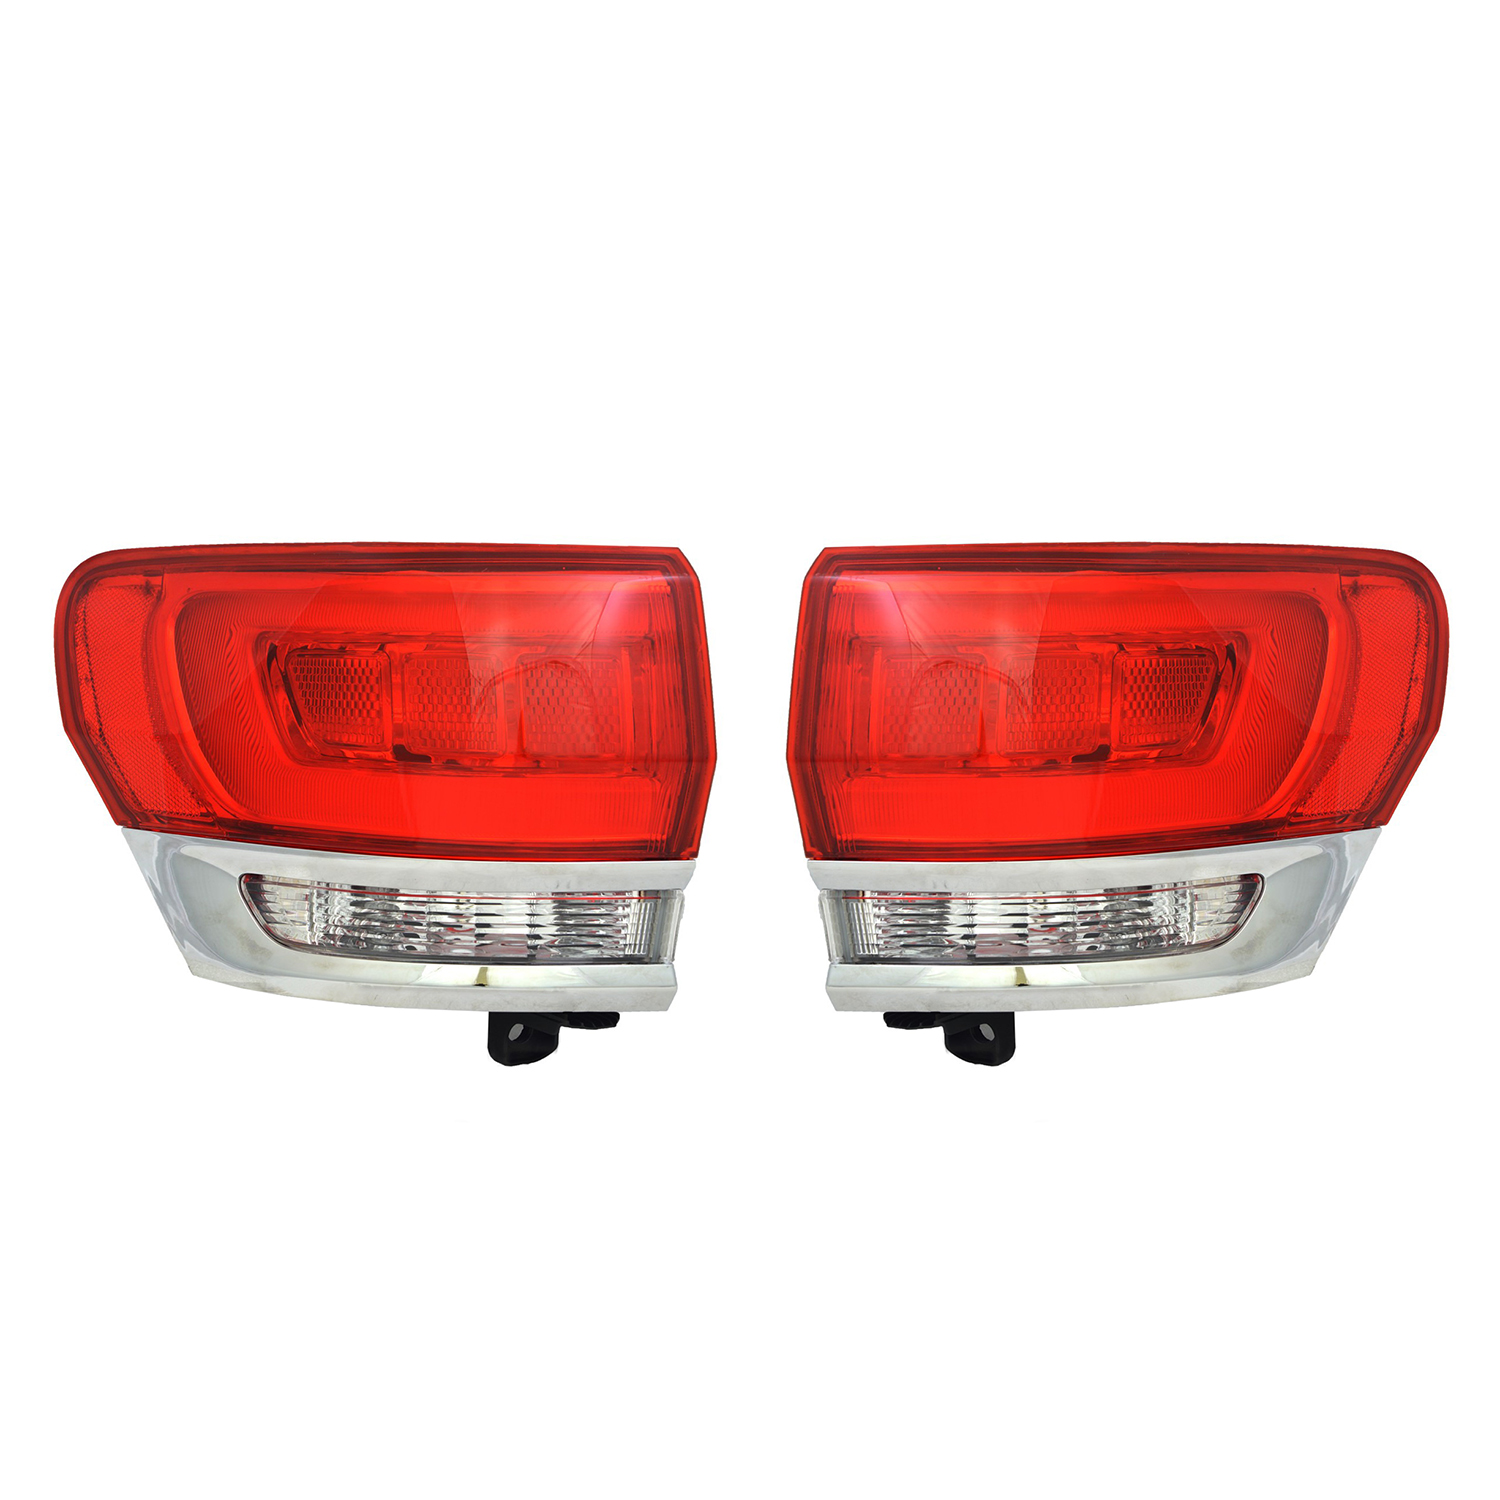 RareElectrical NEW OUTER TAIL LIGHT PAIR FITS JEEP GRAND ...